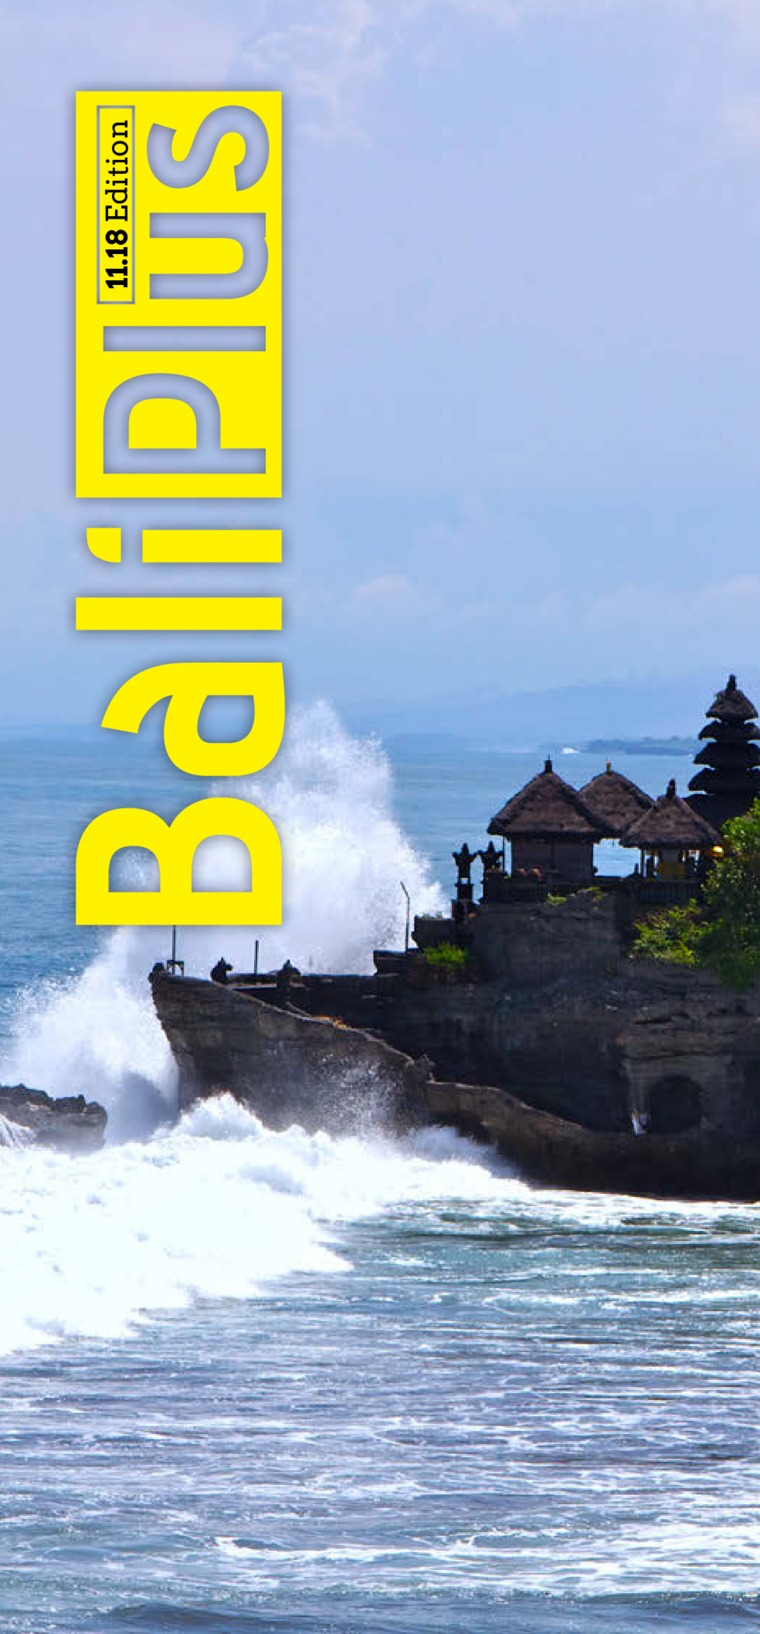 BALI PLUS Digital Magazine November 2018